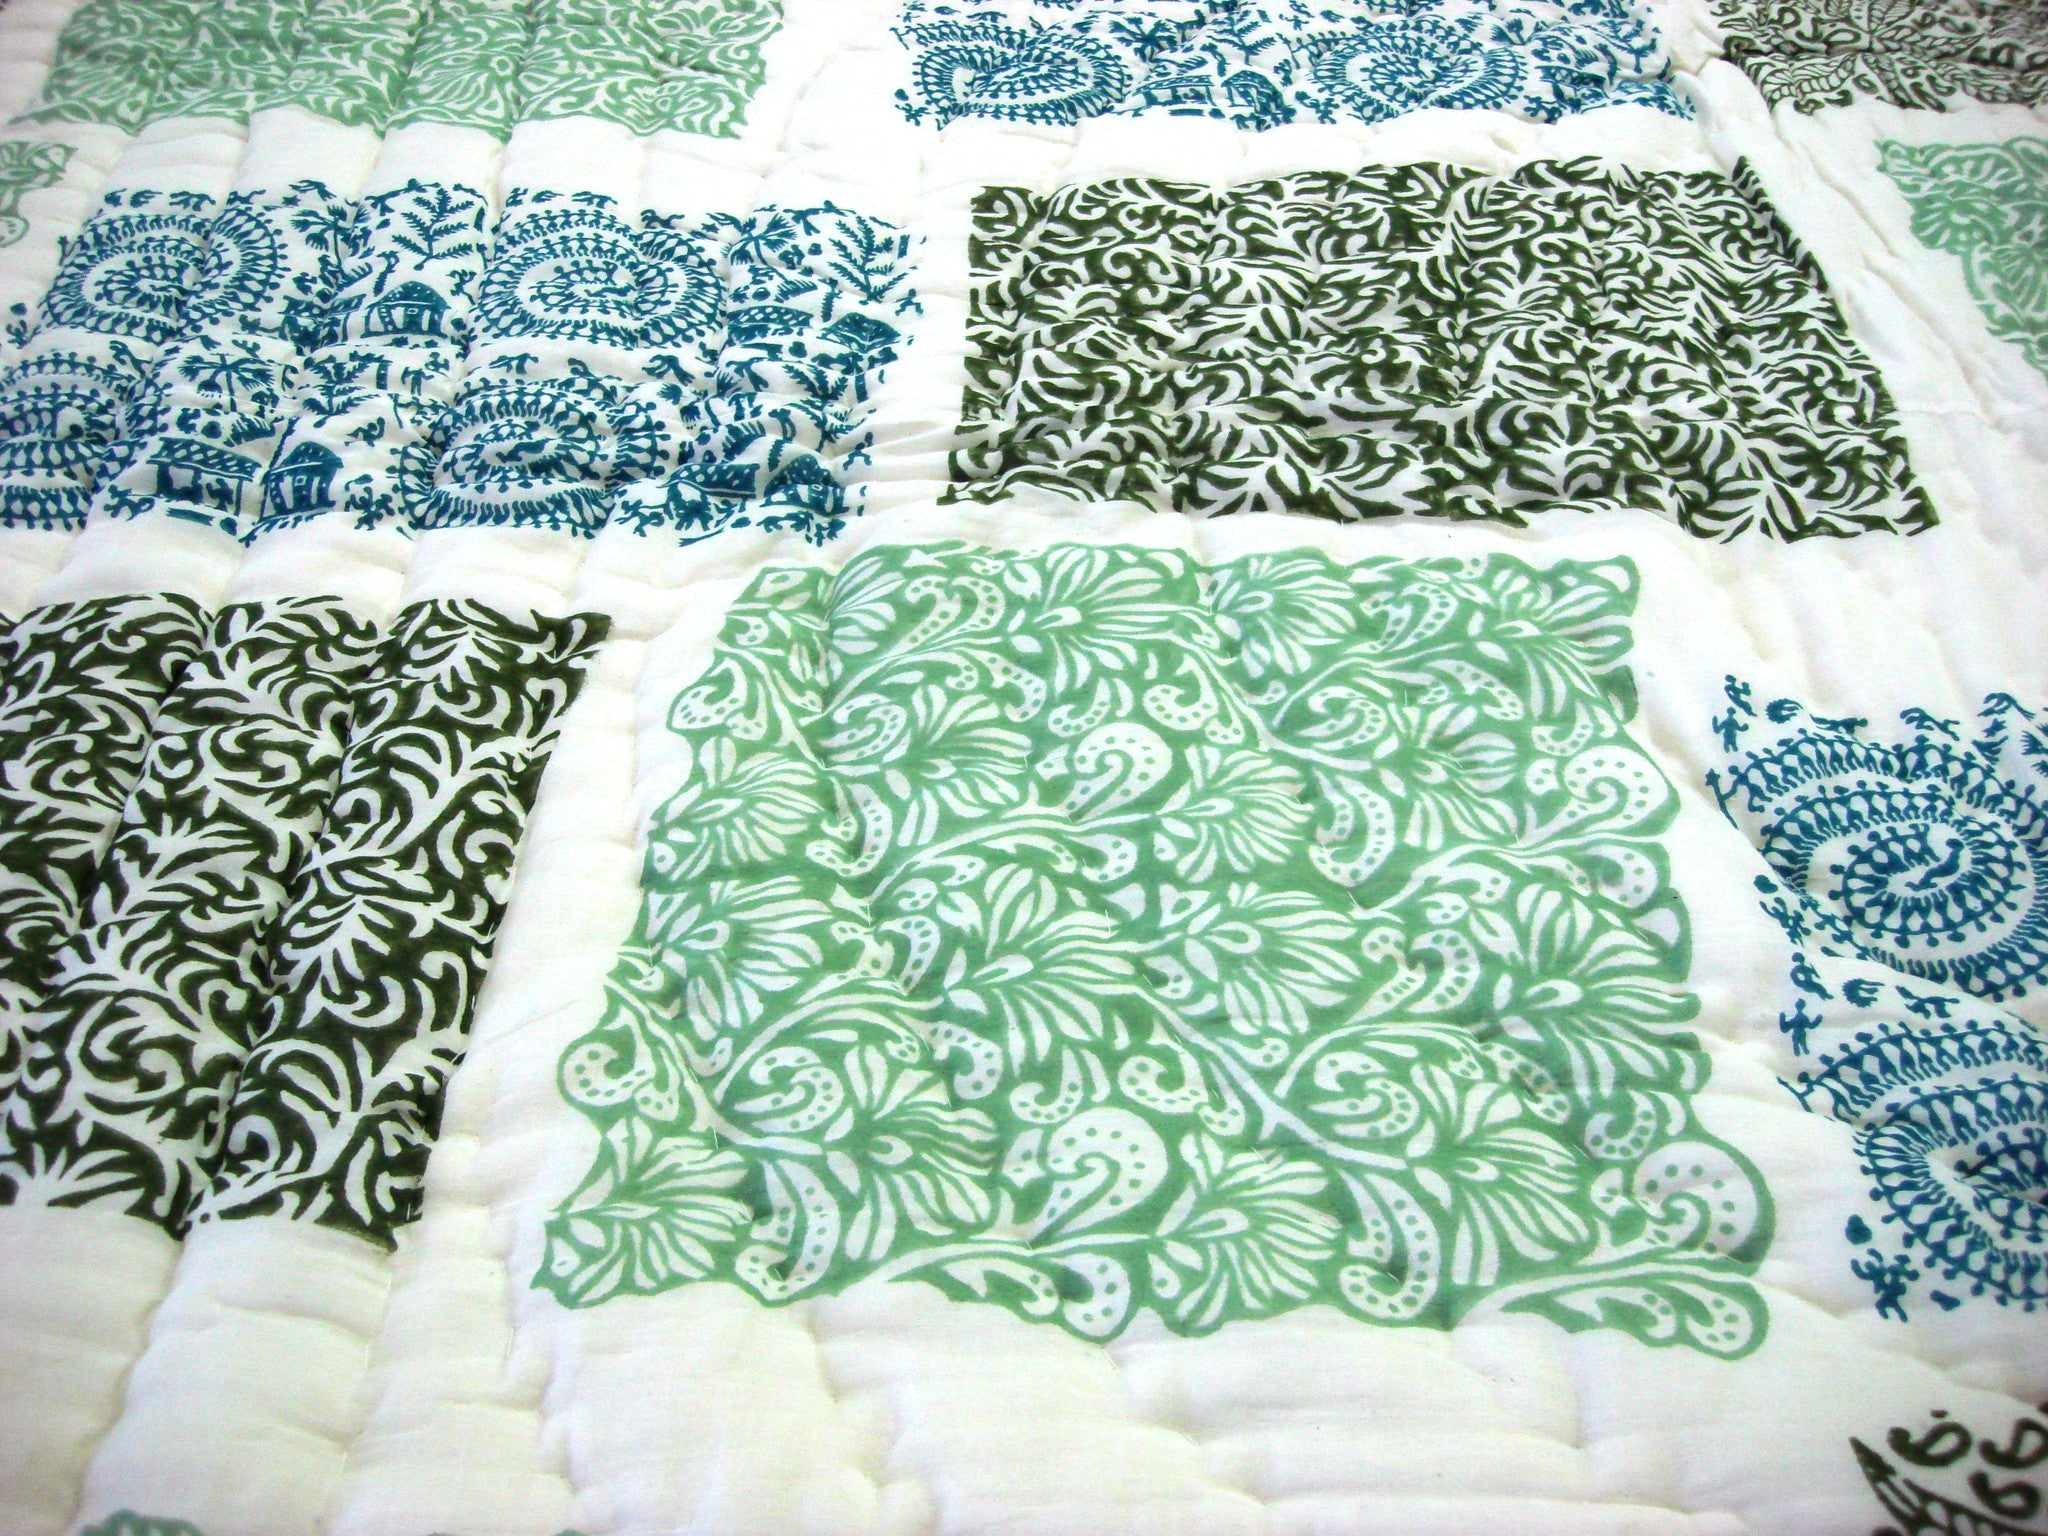 100% Handmade Cotton Queen Quilt - Patchwork Prints - Pentagon Crafts